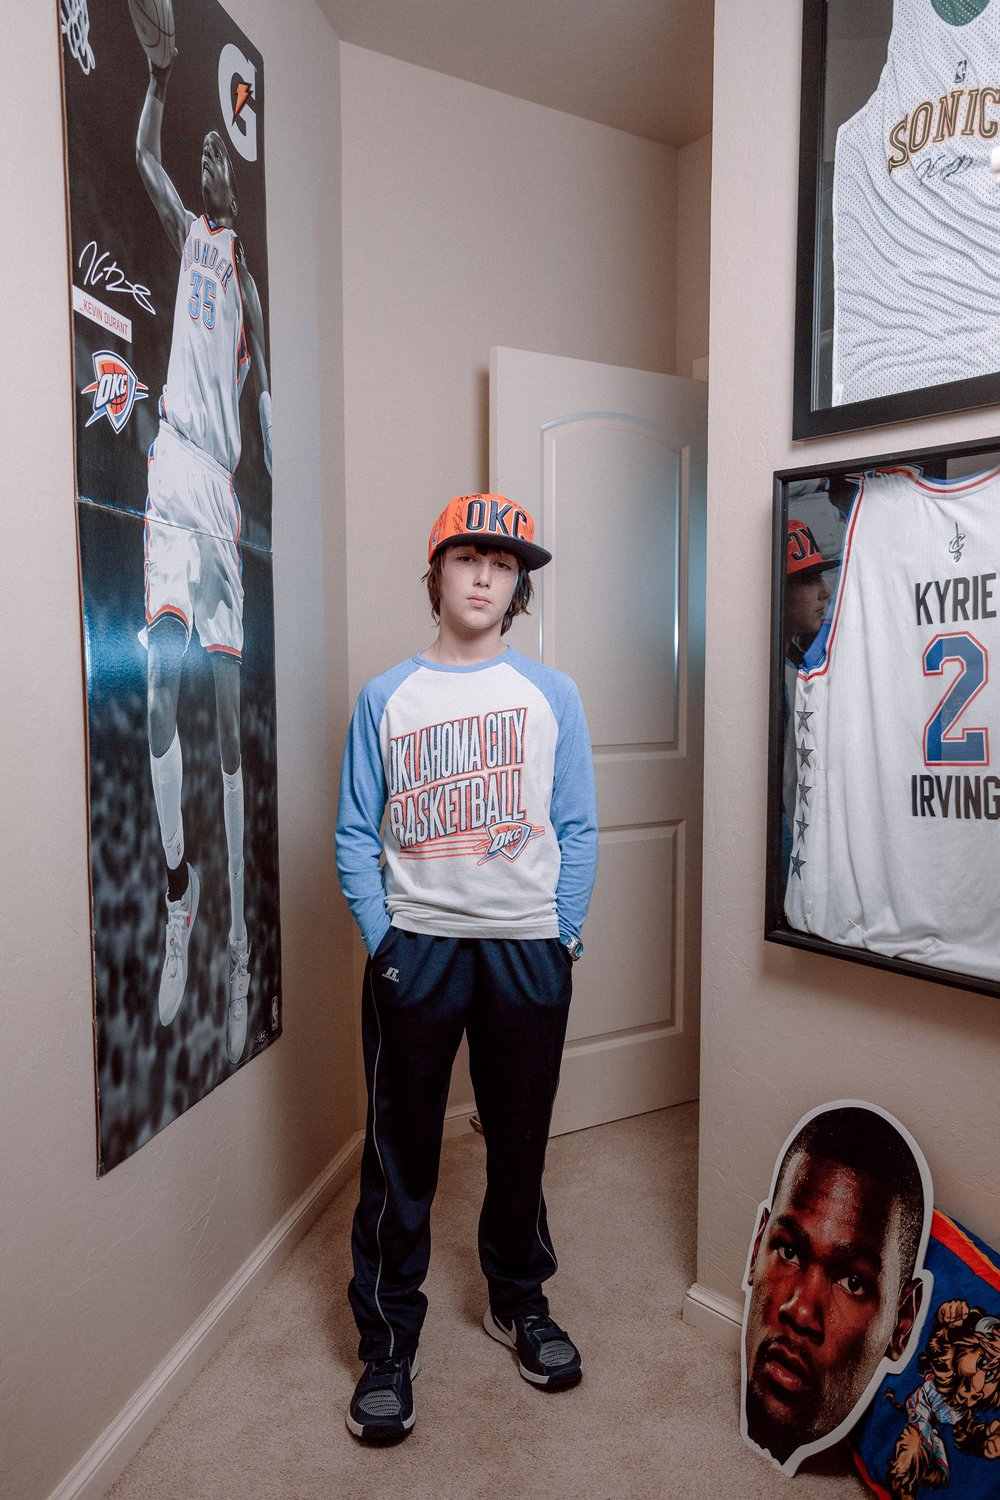 jonathanburkhart,photographer,oklahoma,city,bleacherreport,editorial,charlie,okc,thunder,basketball2.jpg